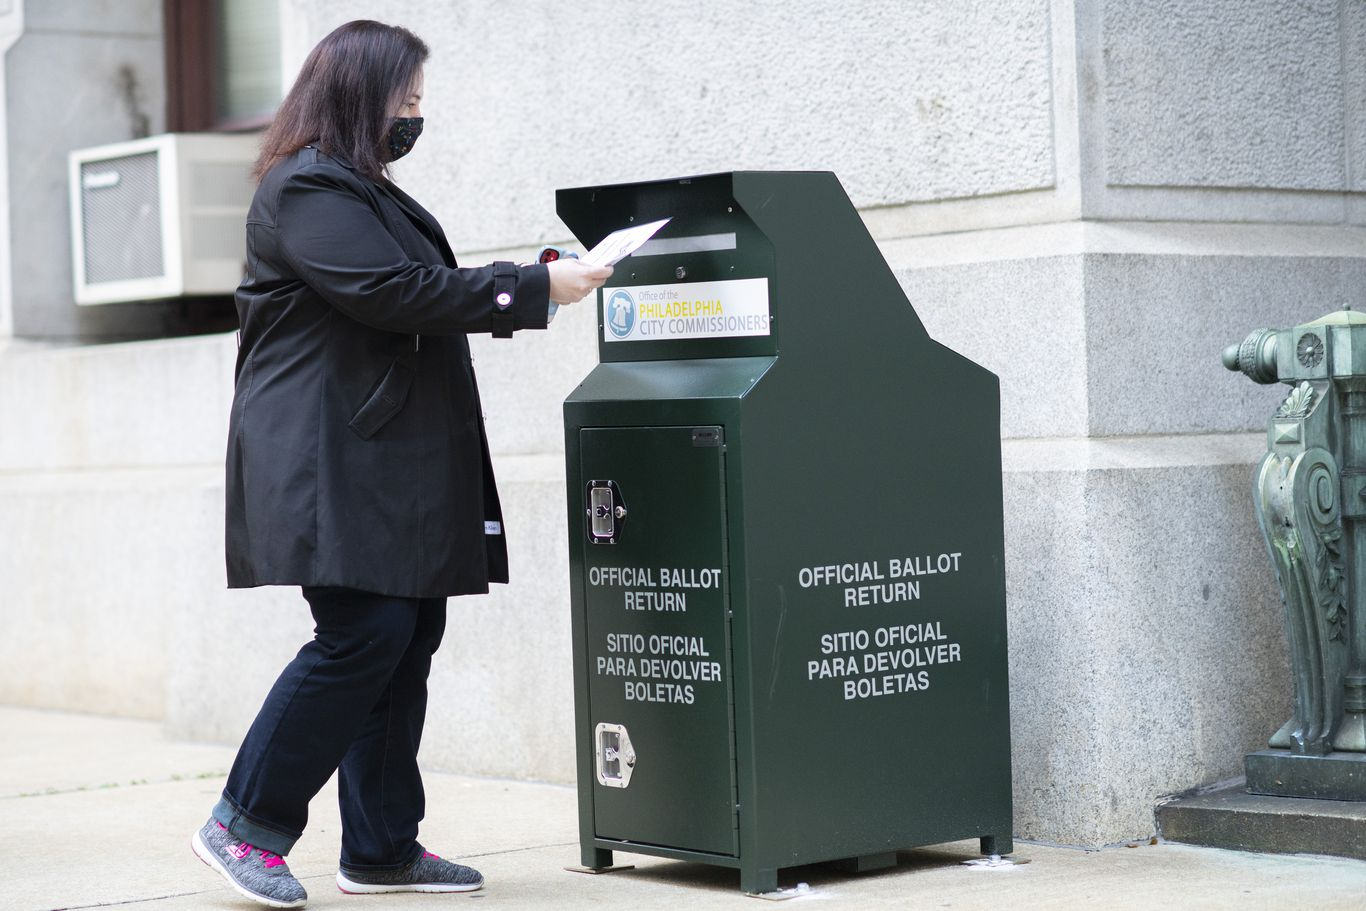 Pennsylvania Supreme Court rules mail-in ballots can't be rejected for mismatched signatures